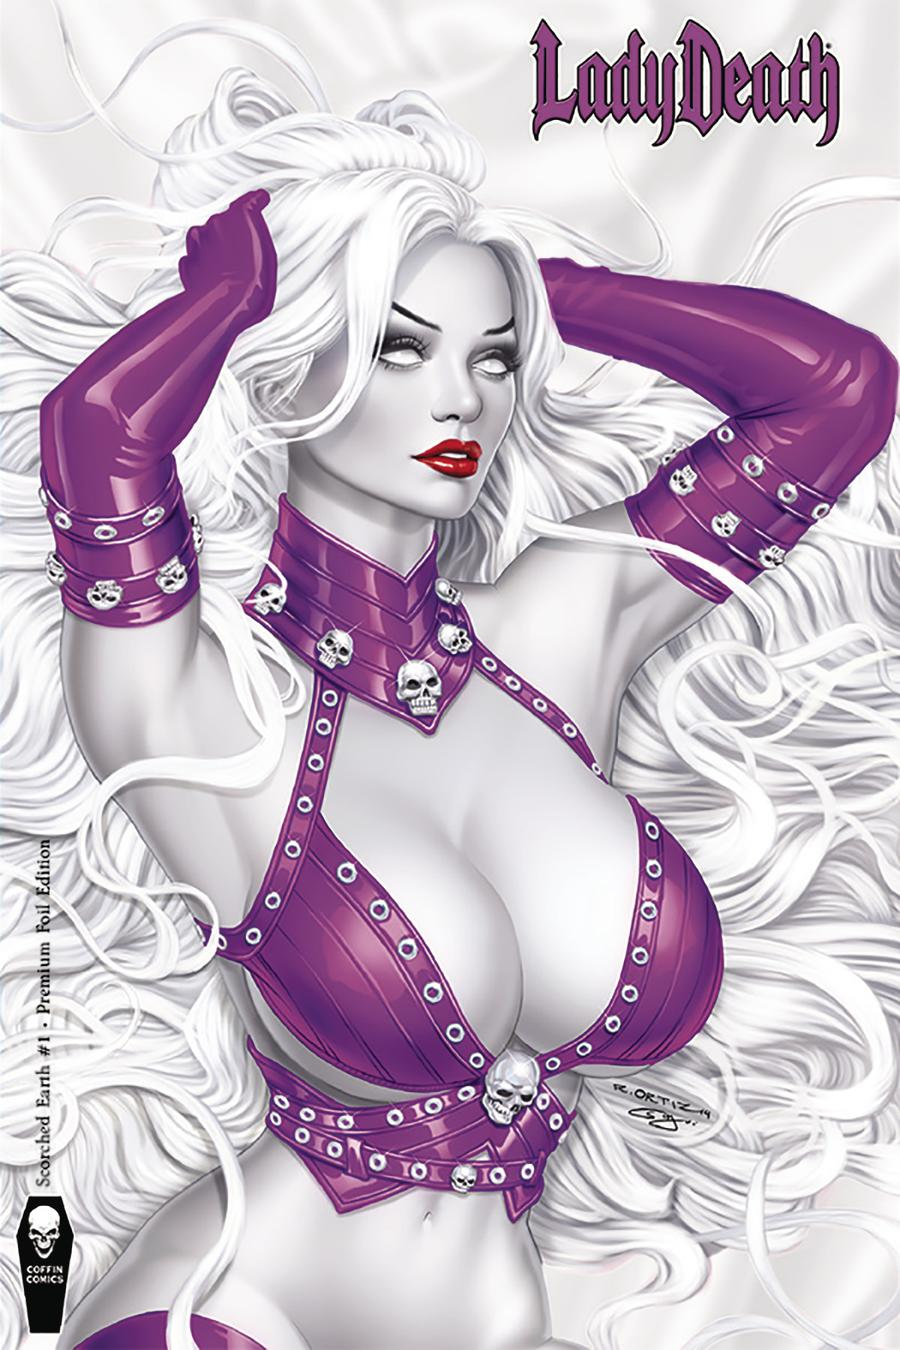 Lady Death Scorched Earth #1 Cover C Variant Richard Ortiz Premium Foil Cover